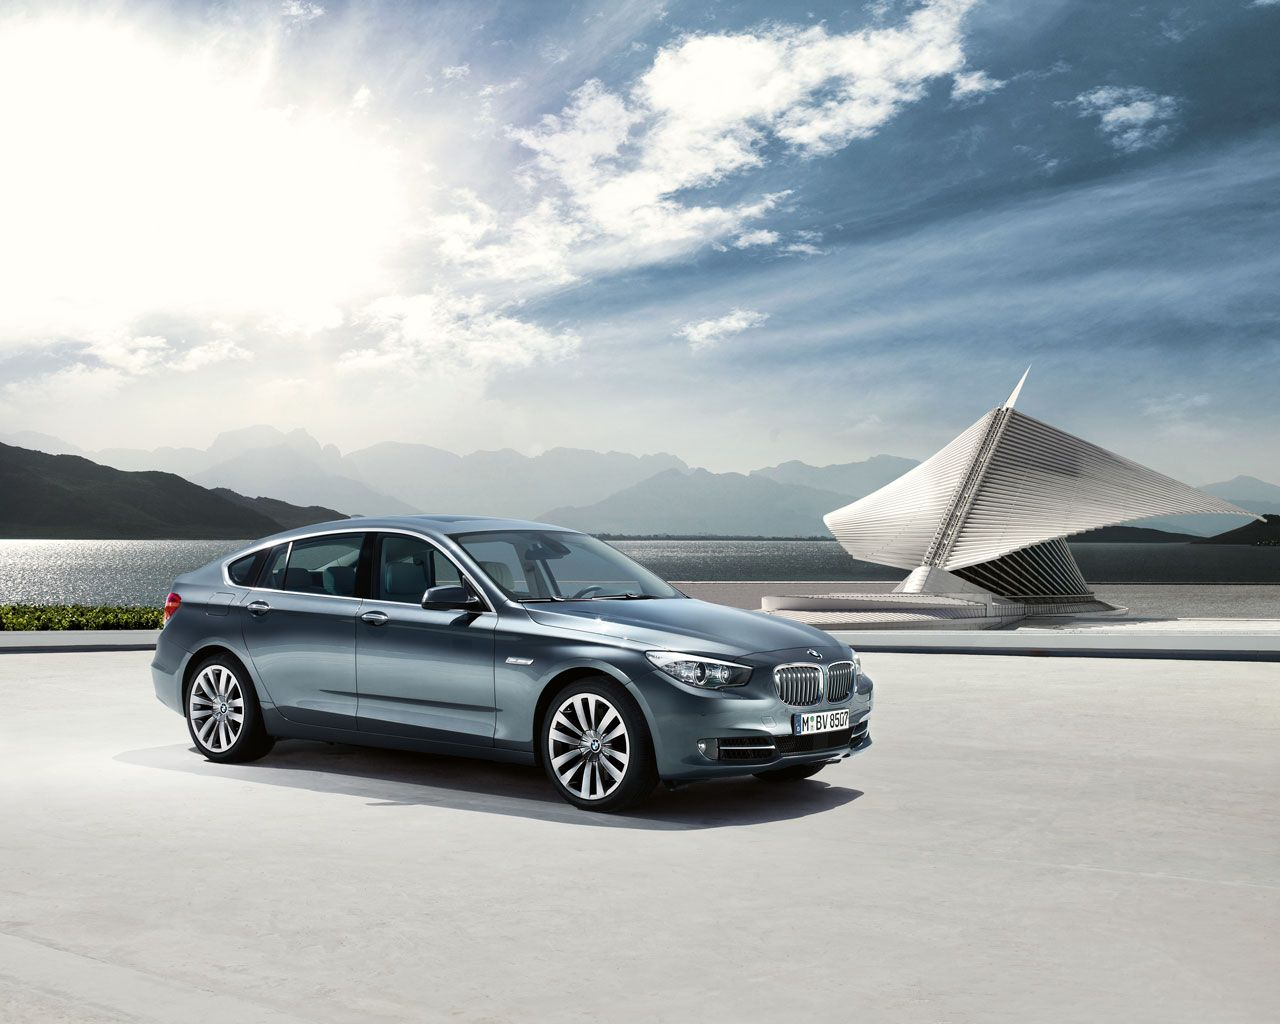 Bmw 535i Gran Turismo Never Gonna Happen But Its Nice To